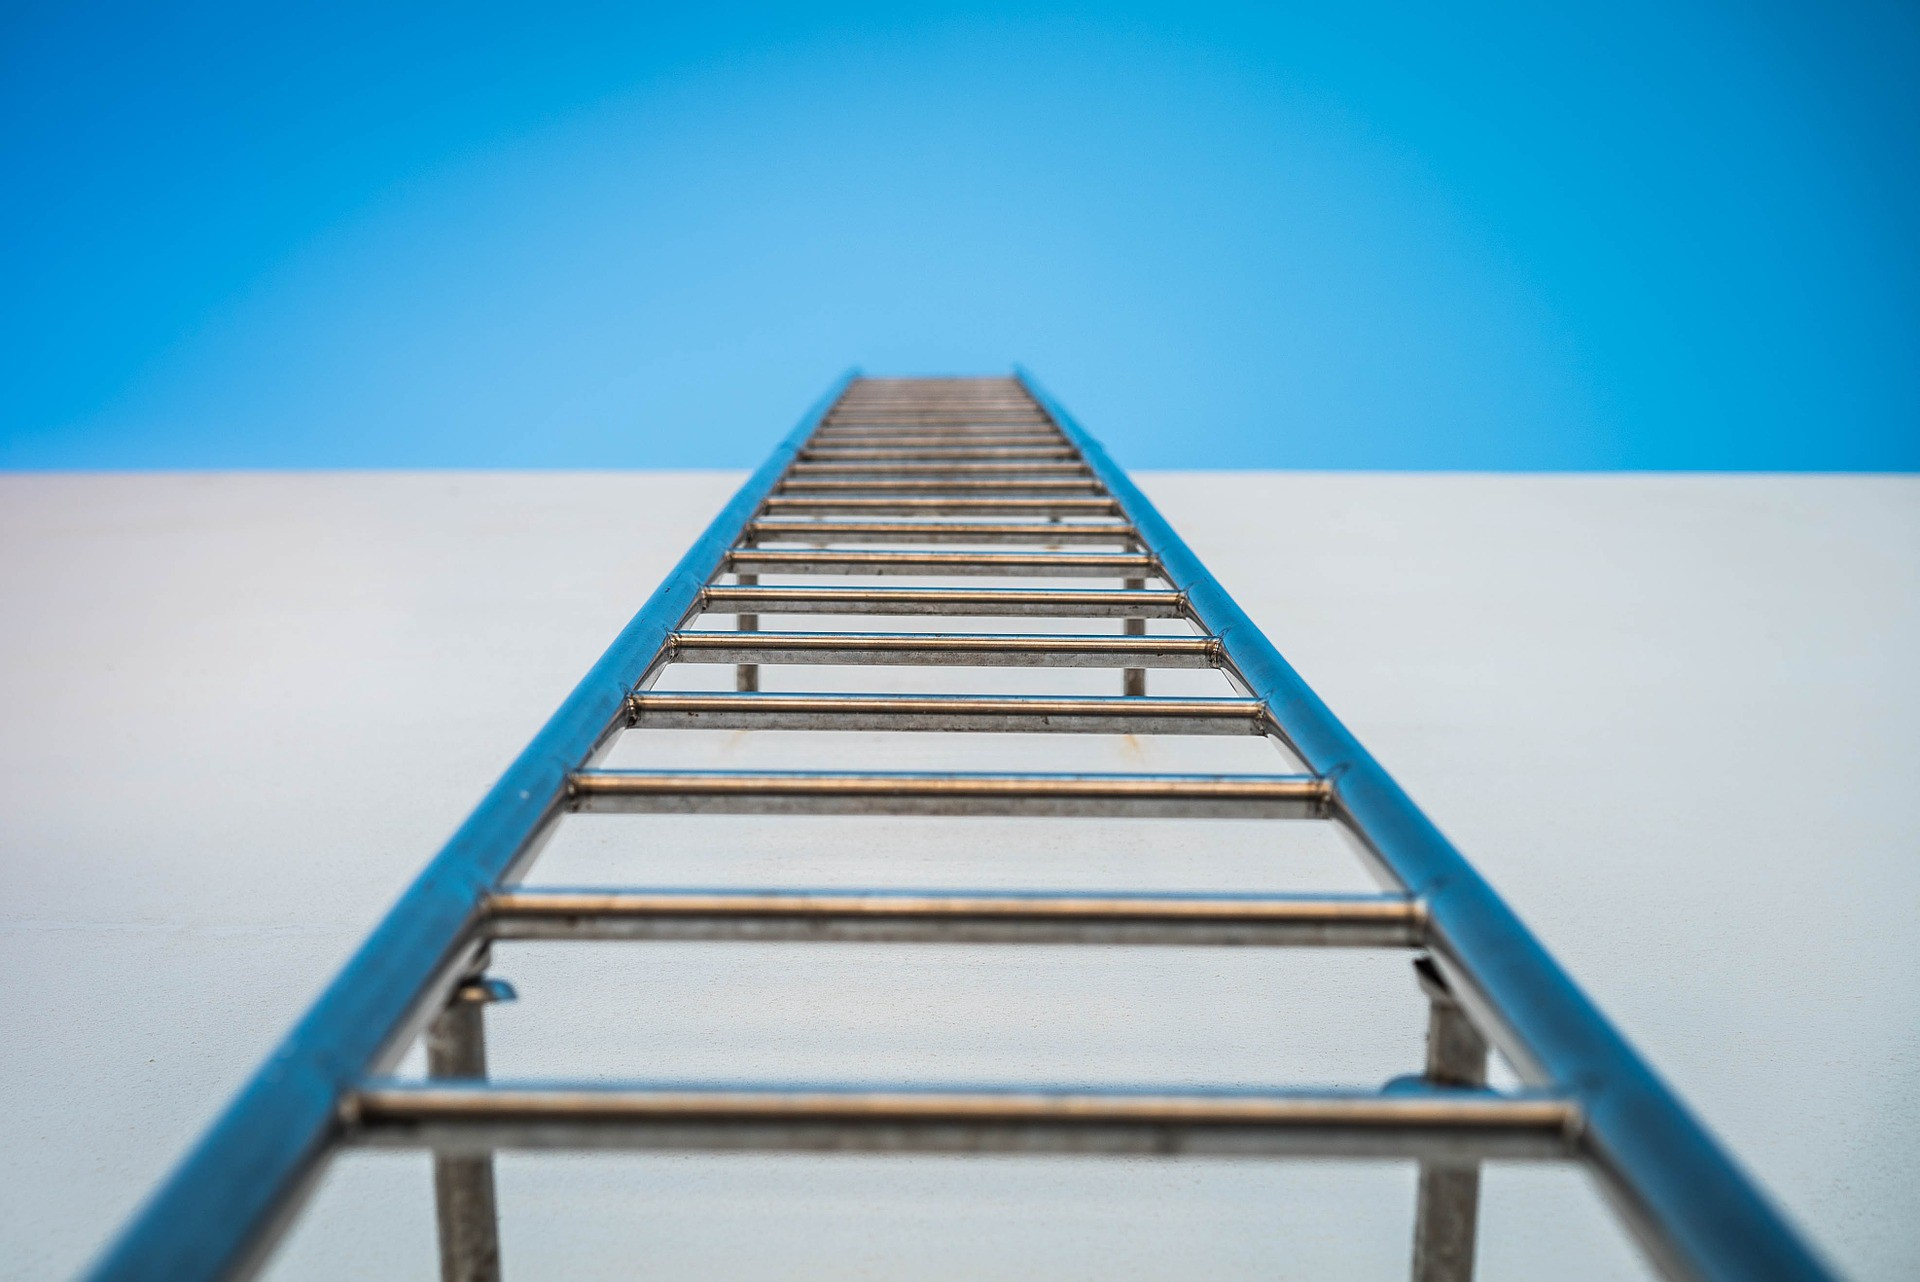 Image of a ladder going up the side of the building as if you are climbing it.